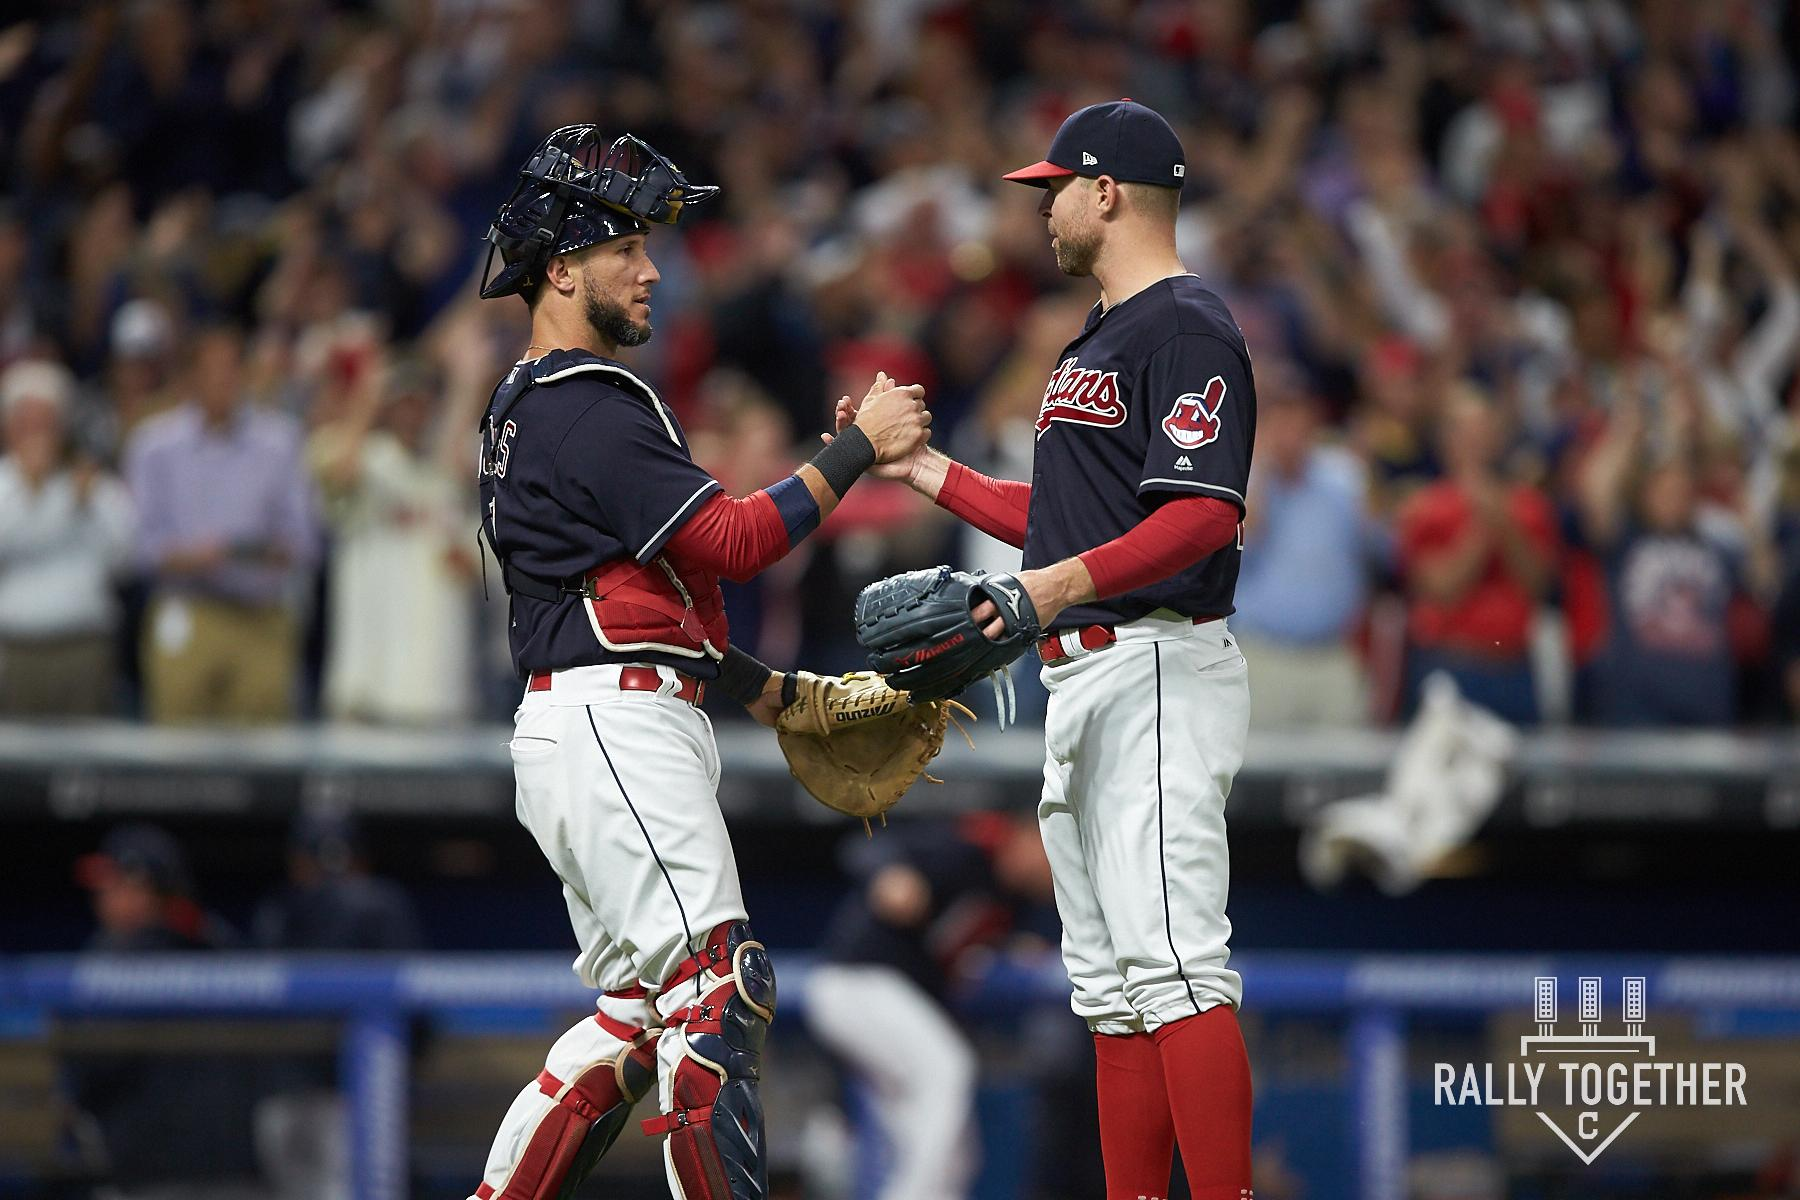 Win streak: 20. (!)  Magic number: 5.  #WWWWWWWWWWWWWWWWWWWWindians https://t.co/1fAEVDjNyT